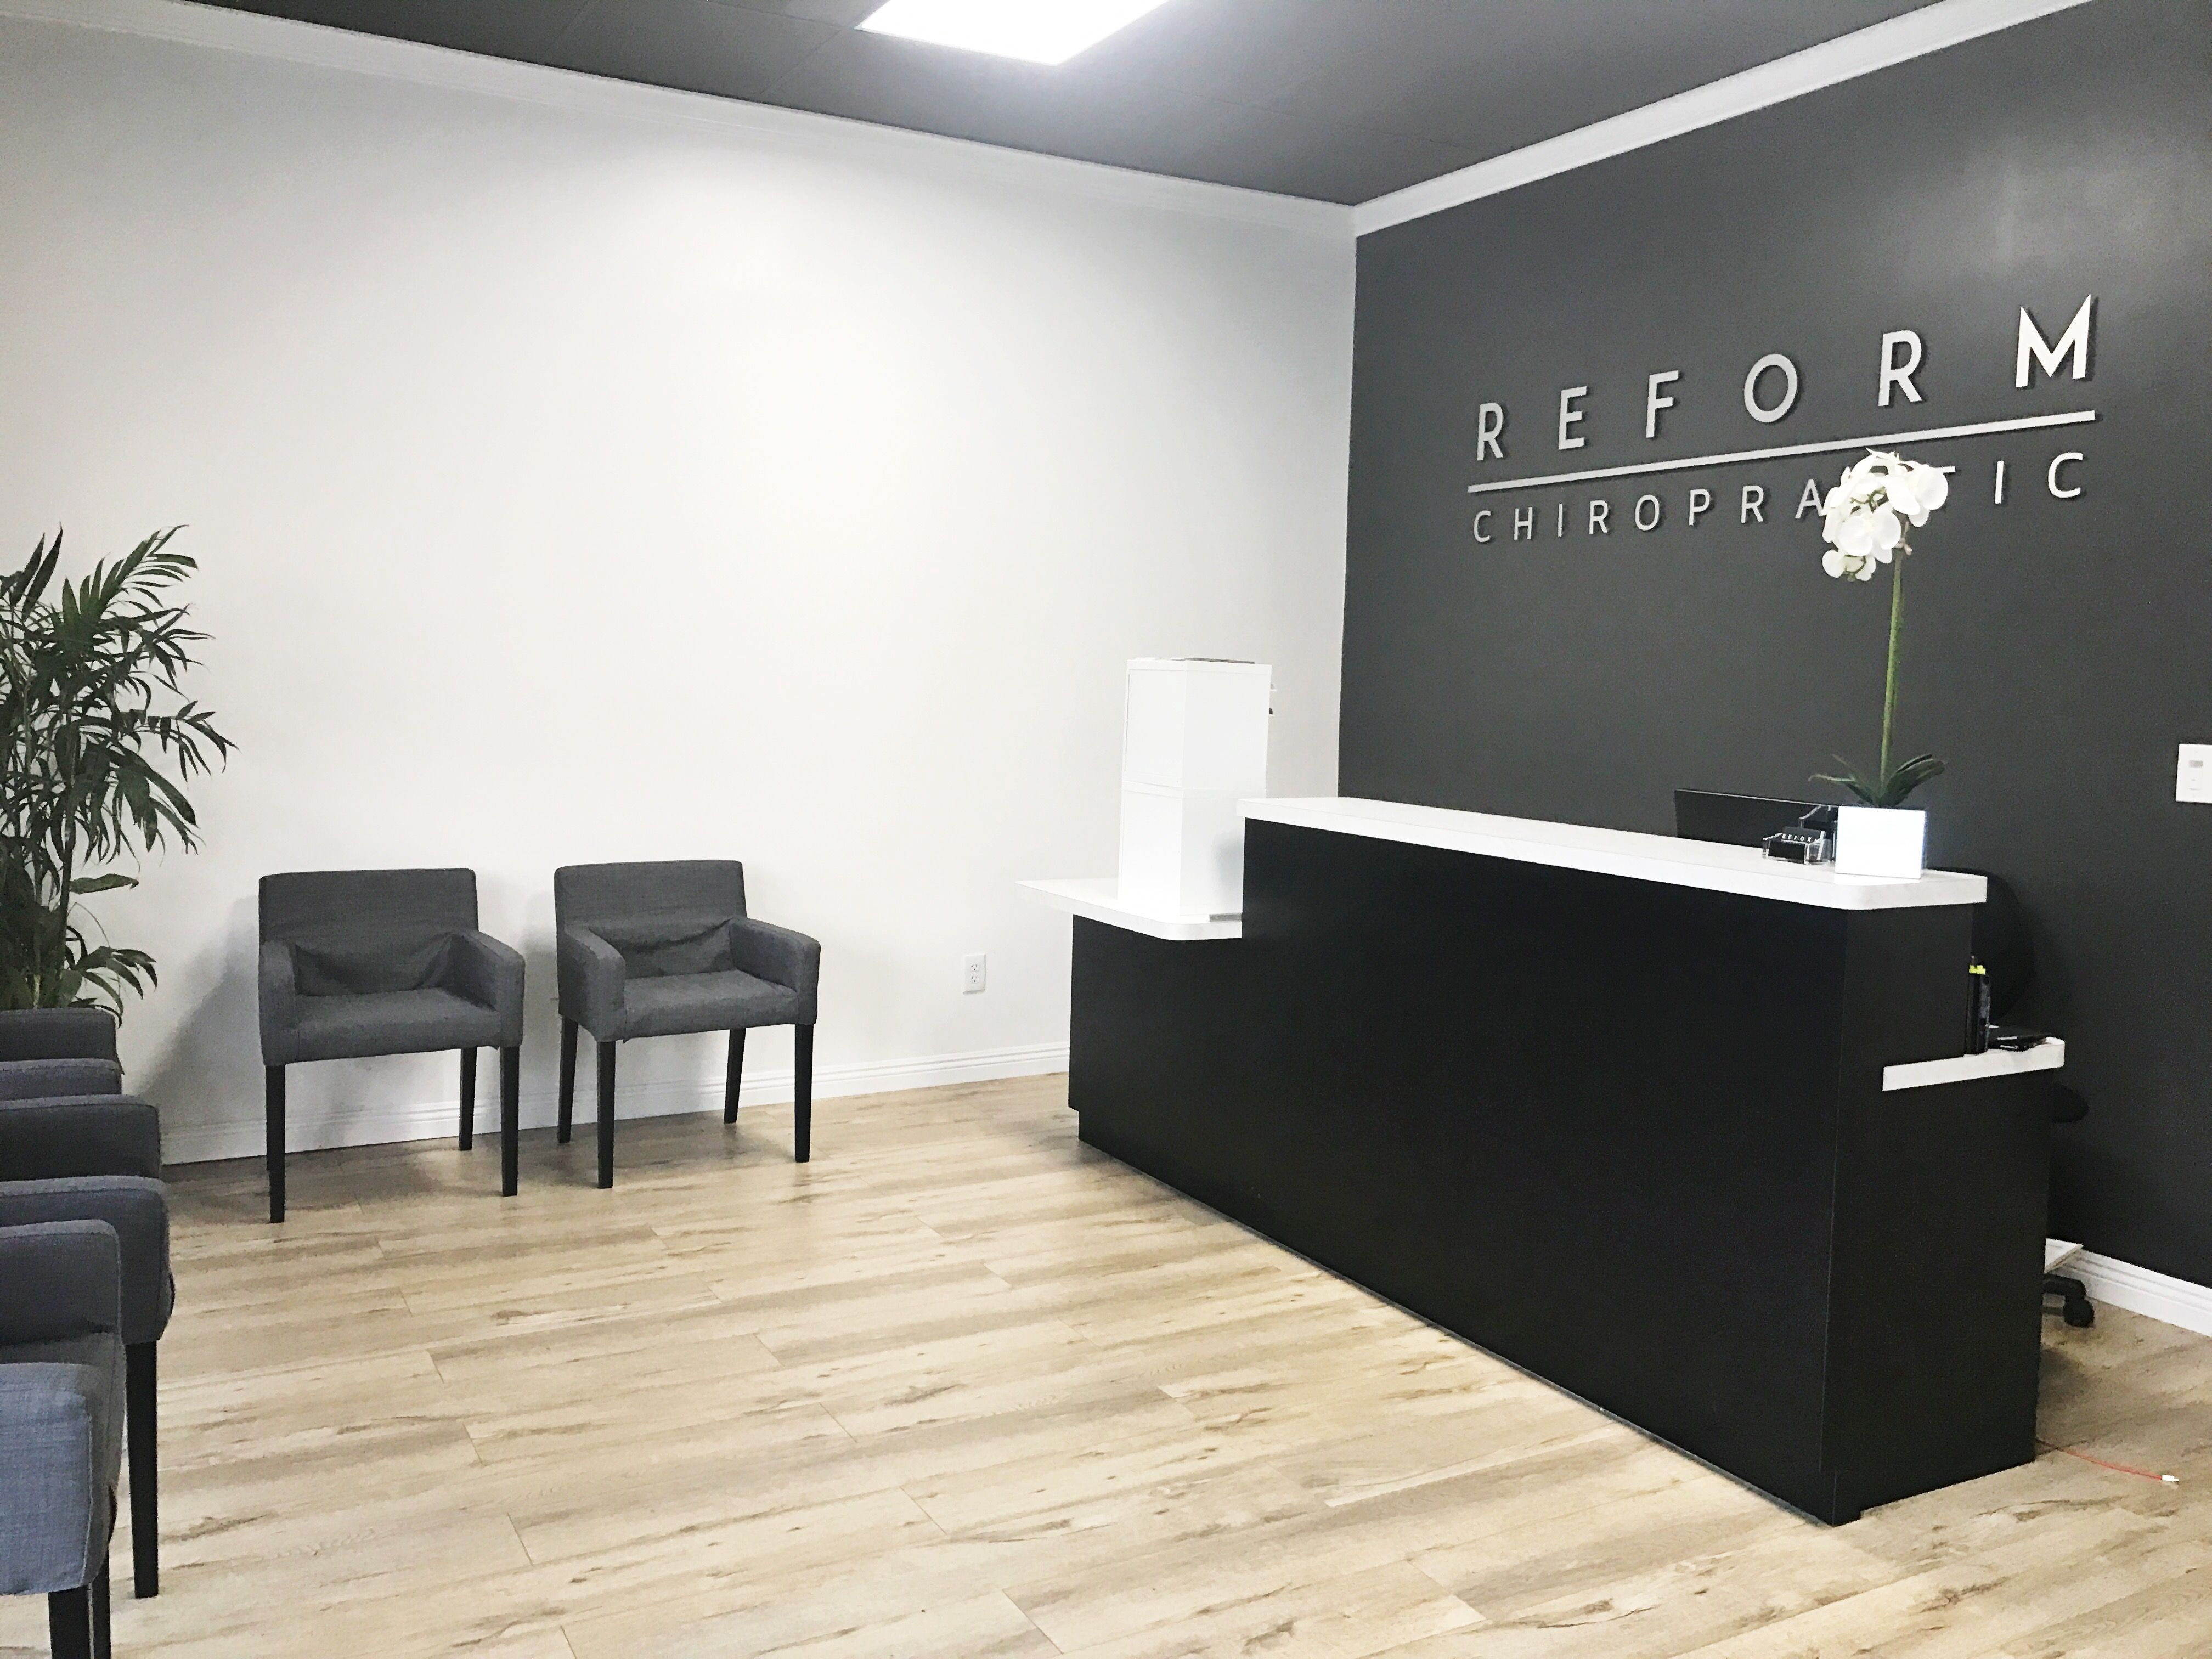 Magnificent Chiropractic Office Lobby Reception Modern Design Beutiful Home Inspiration Papxelindsey Bellcom